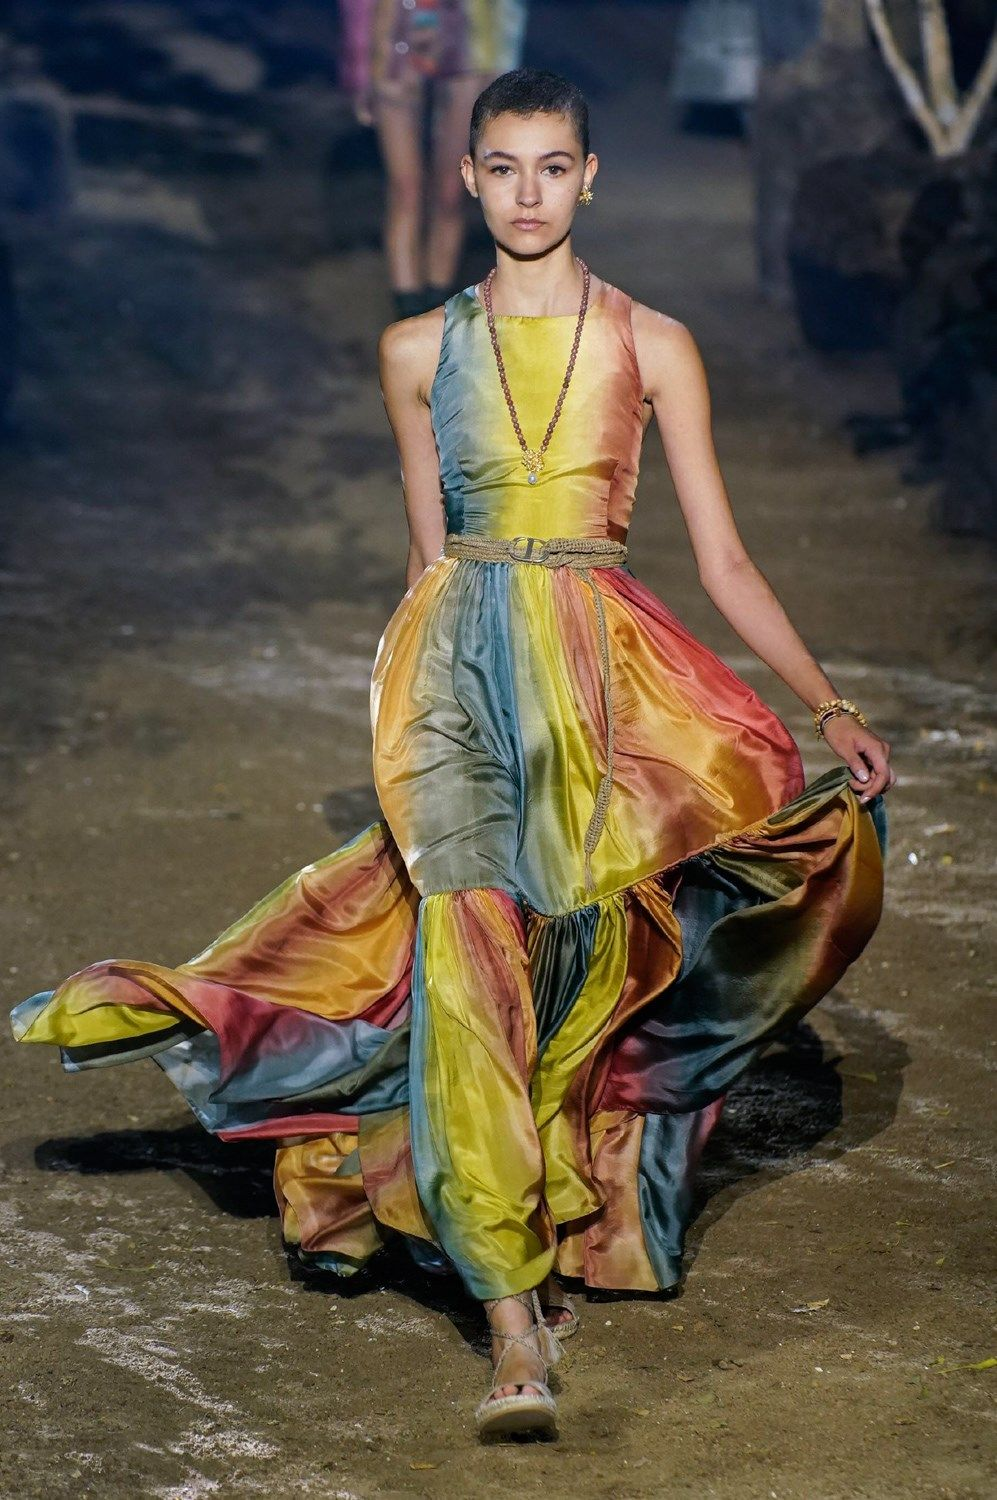 Pin on Fashion - Haute Couture